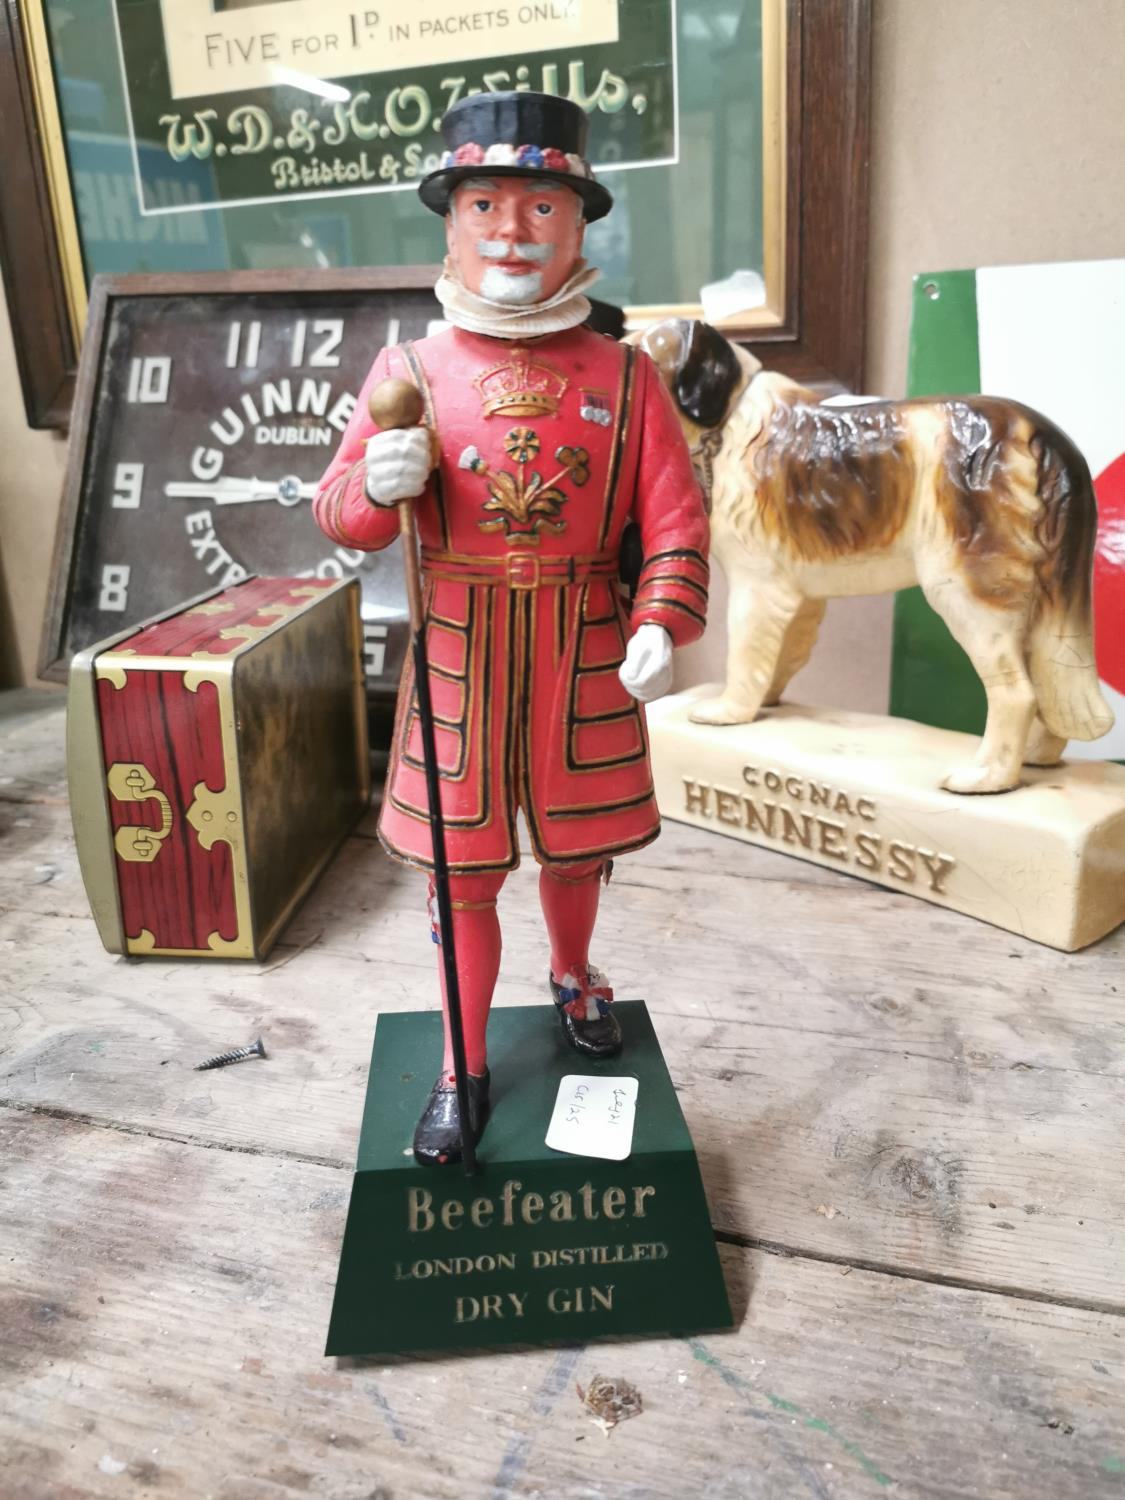 Beefeater London Dry Gin advertising figure.